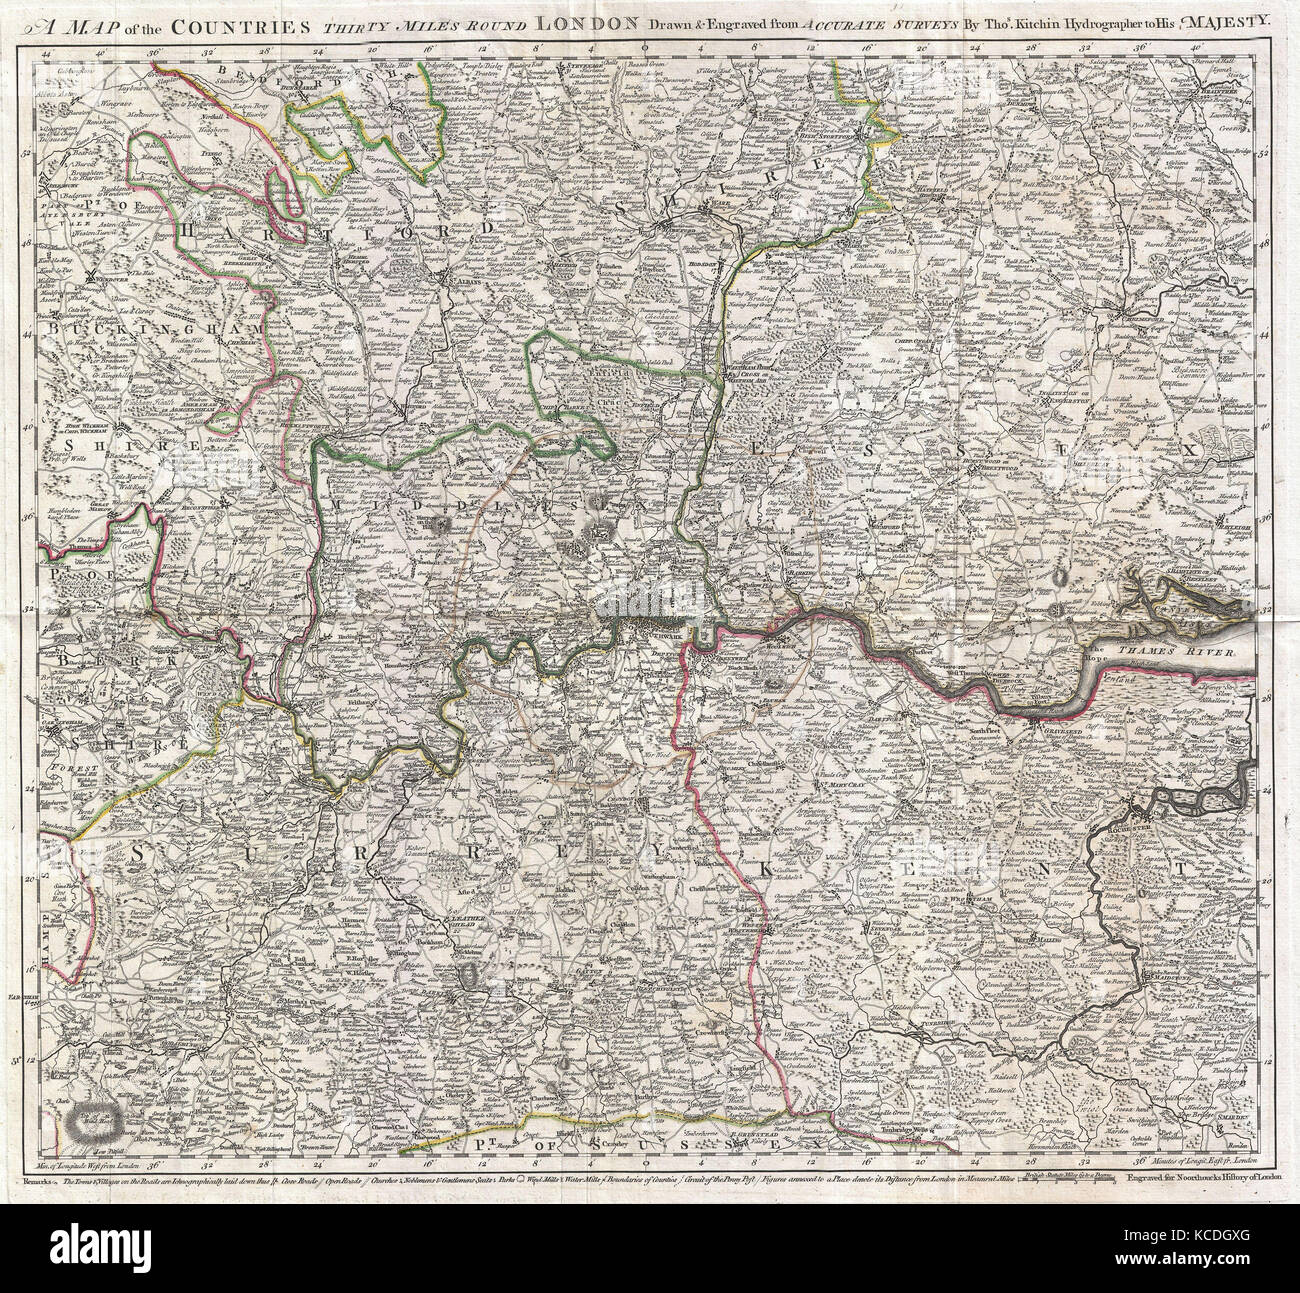 Kitchin map stock photos kitchin map stock images alamy 1773 kitchin map of the country 30 miles around london england stock image freerunsca Image collections